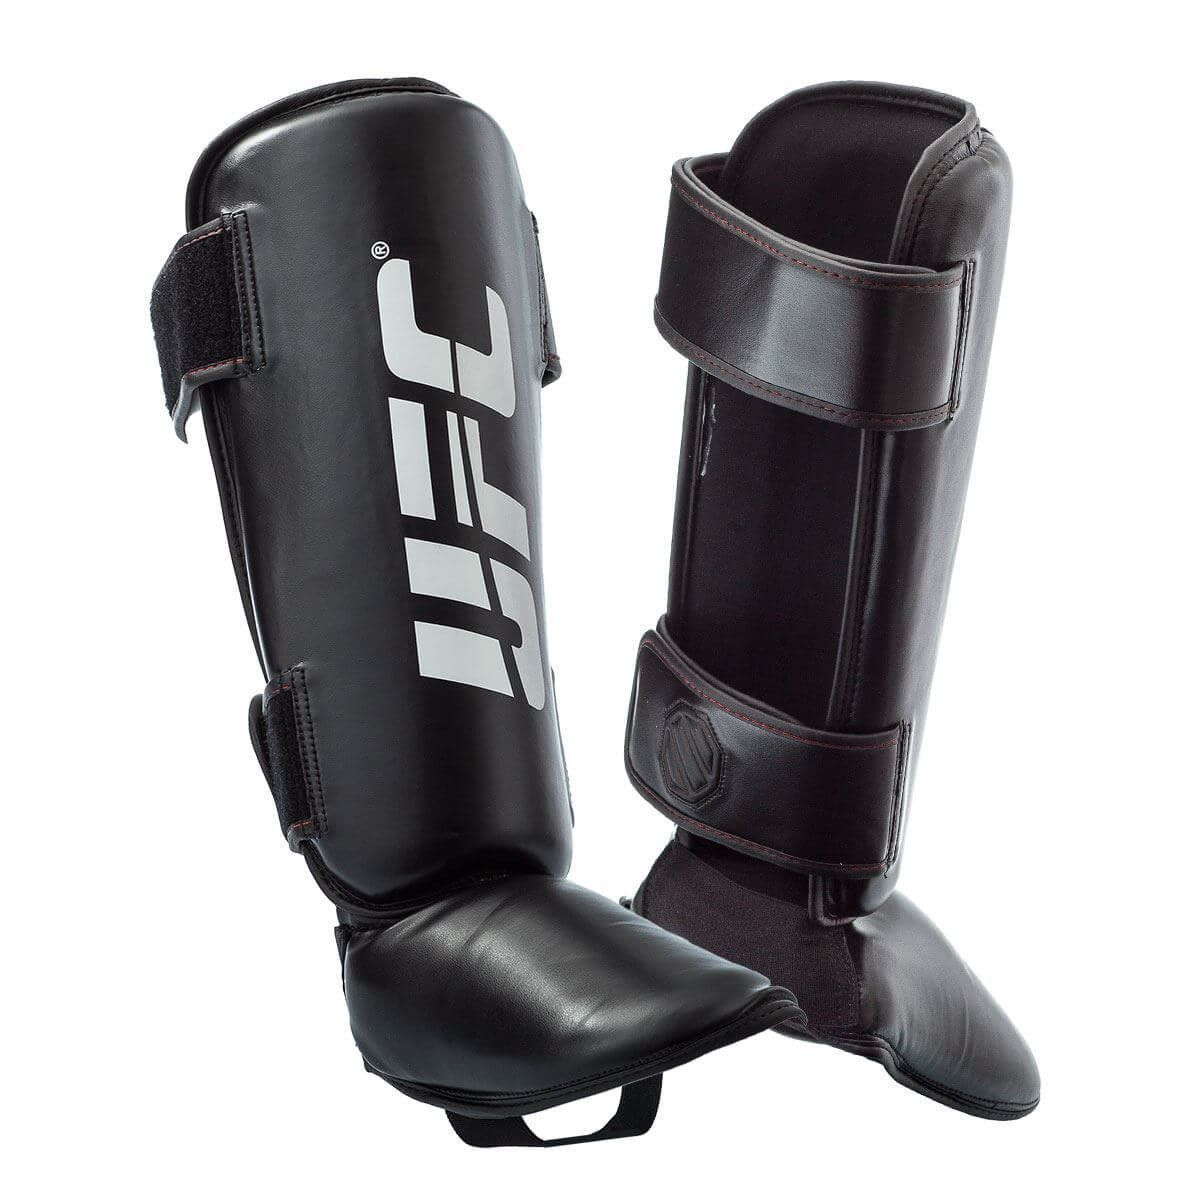 UFC Pro Traditional Shin Guards Sparring gear, Ufc